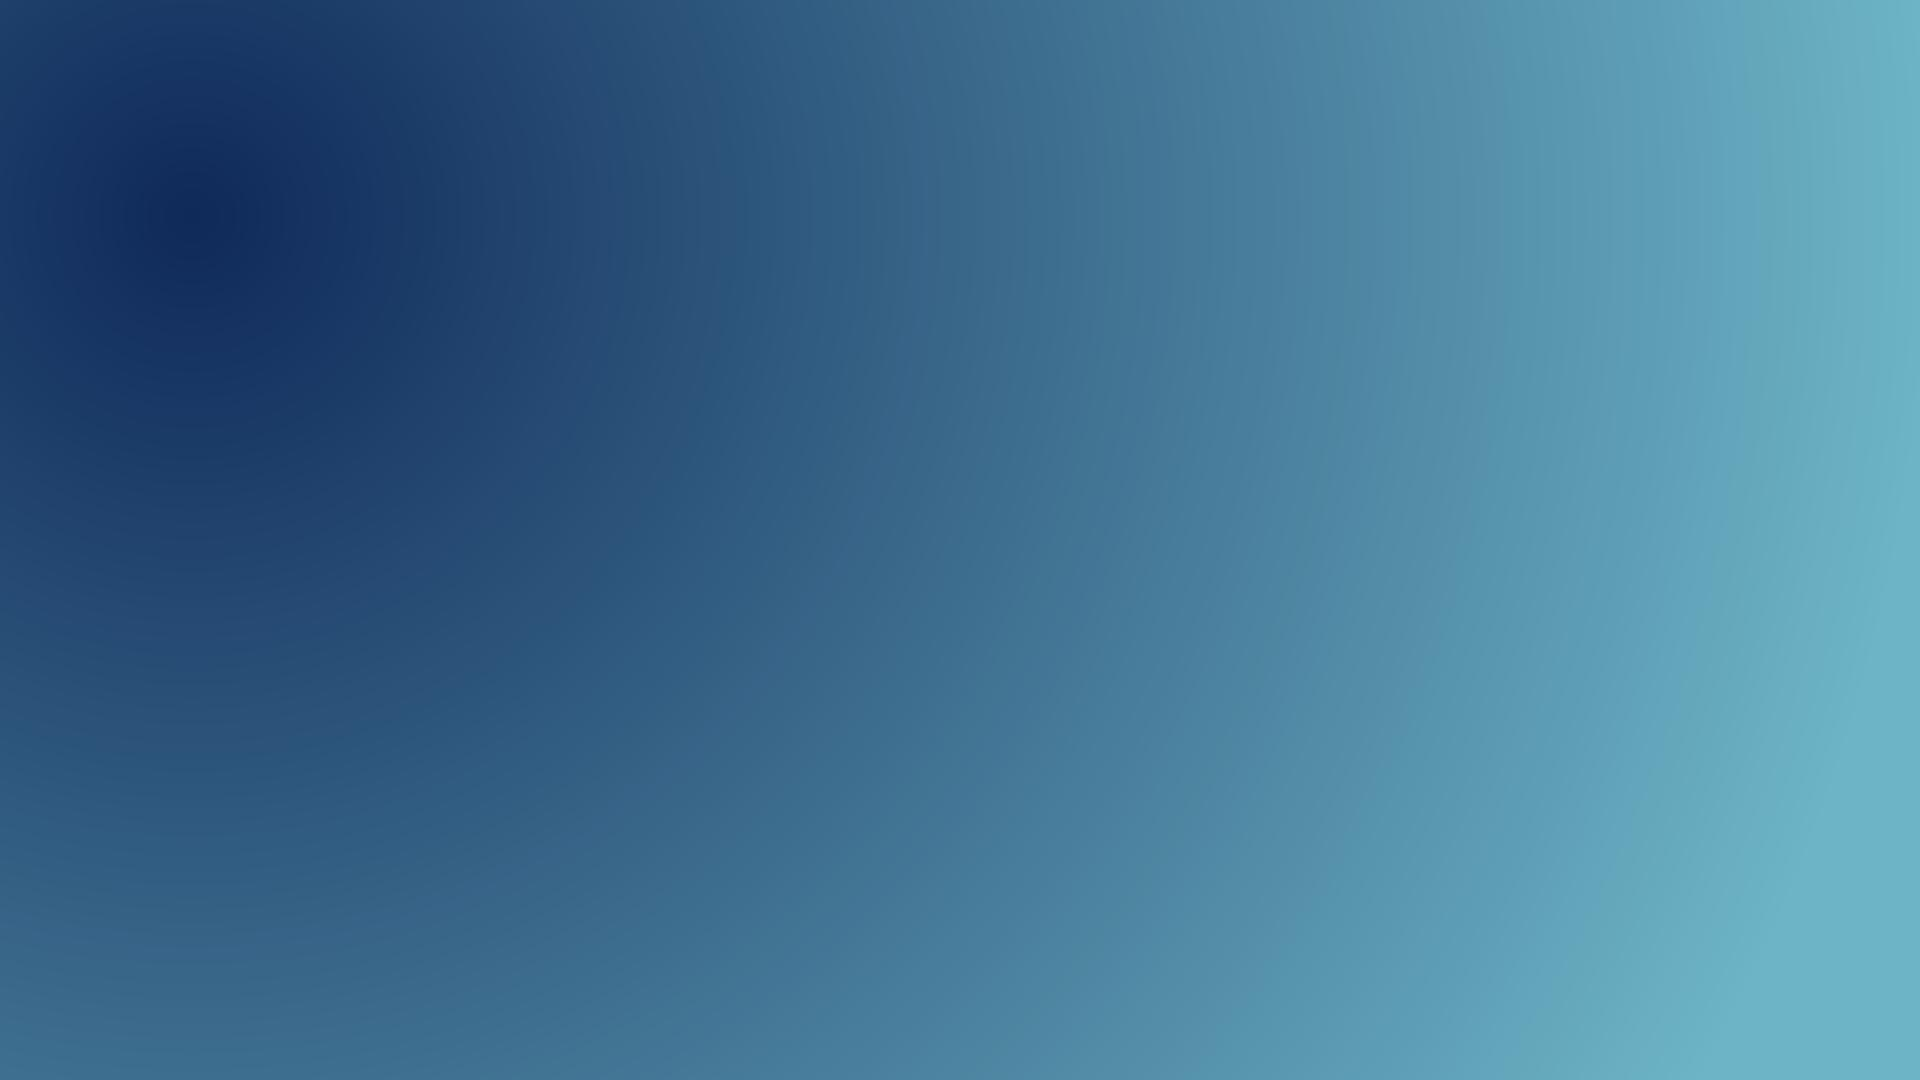 Dark Blue Gradient Gradient